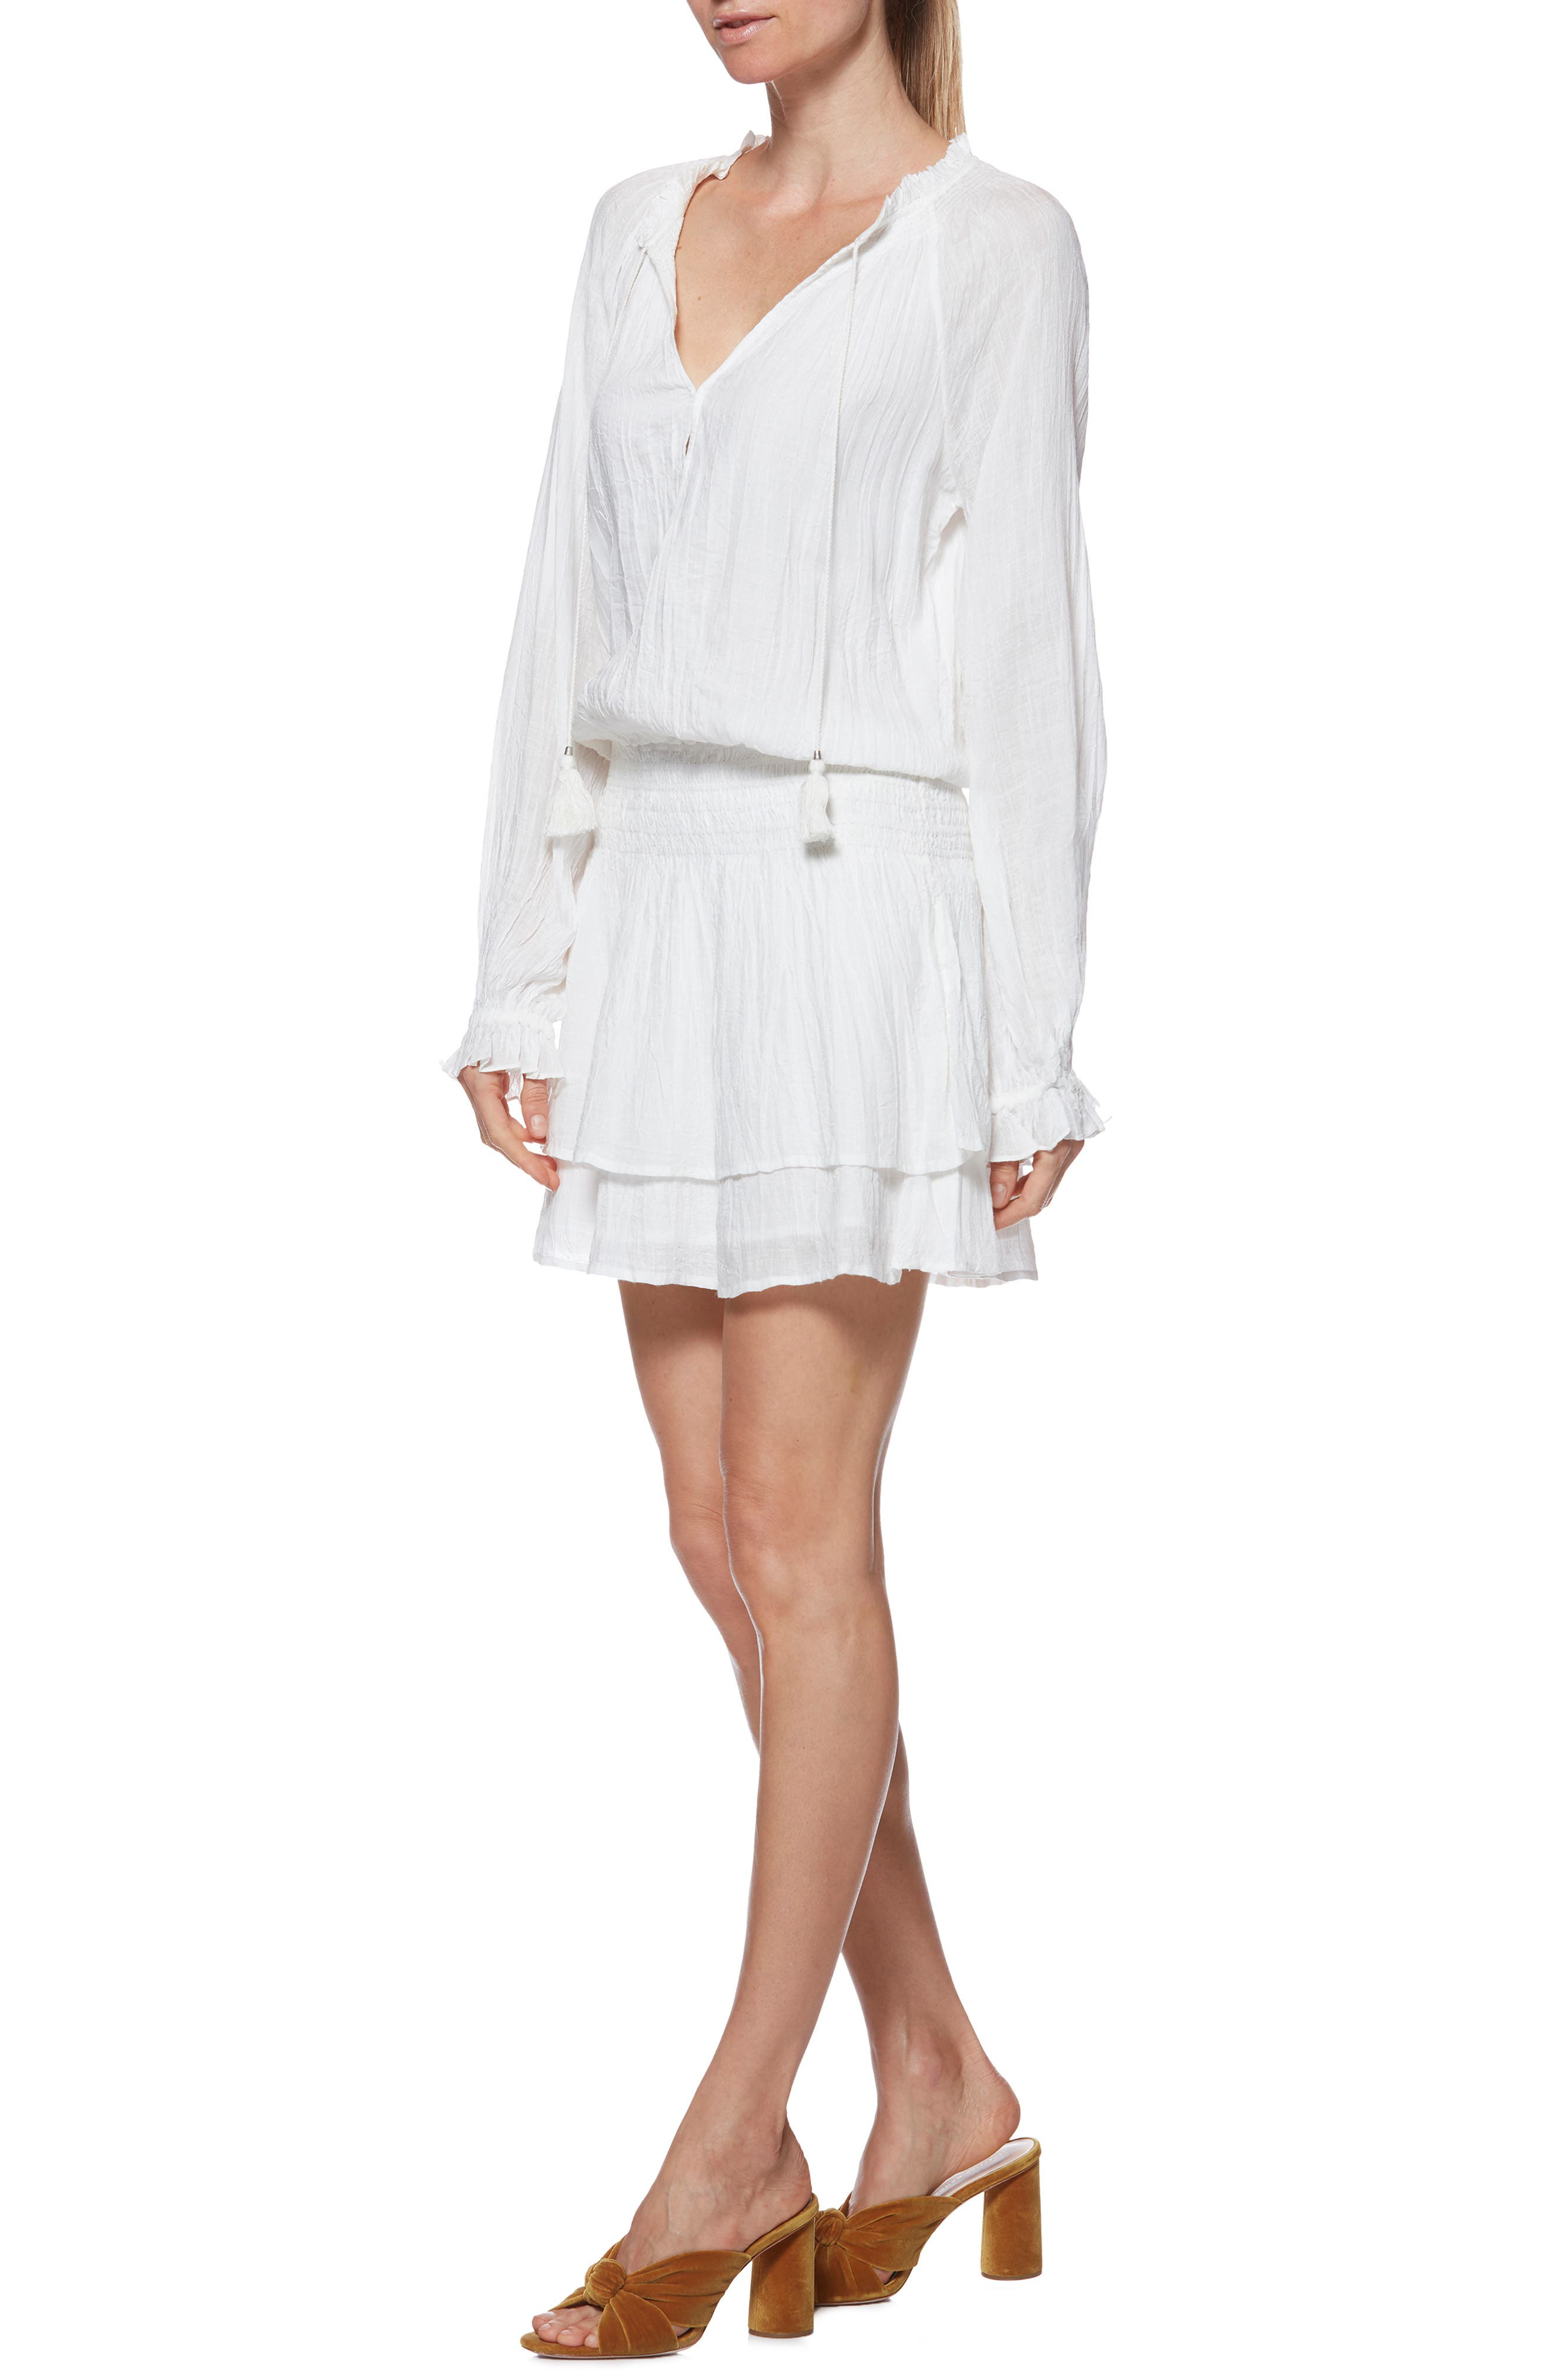 Lemay Dress,                             Alternate thumbnail 3, color,                             WHITE